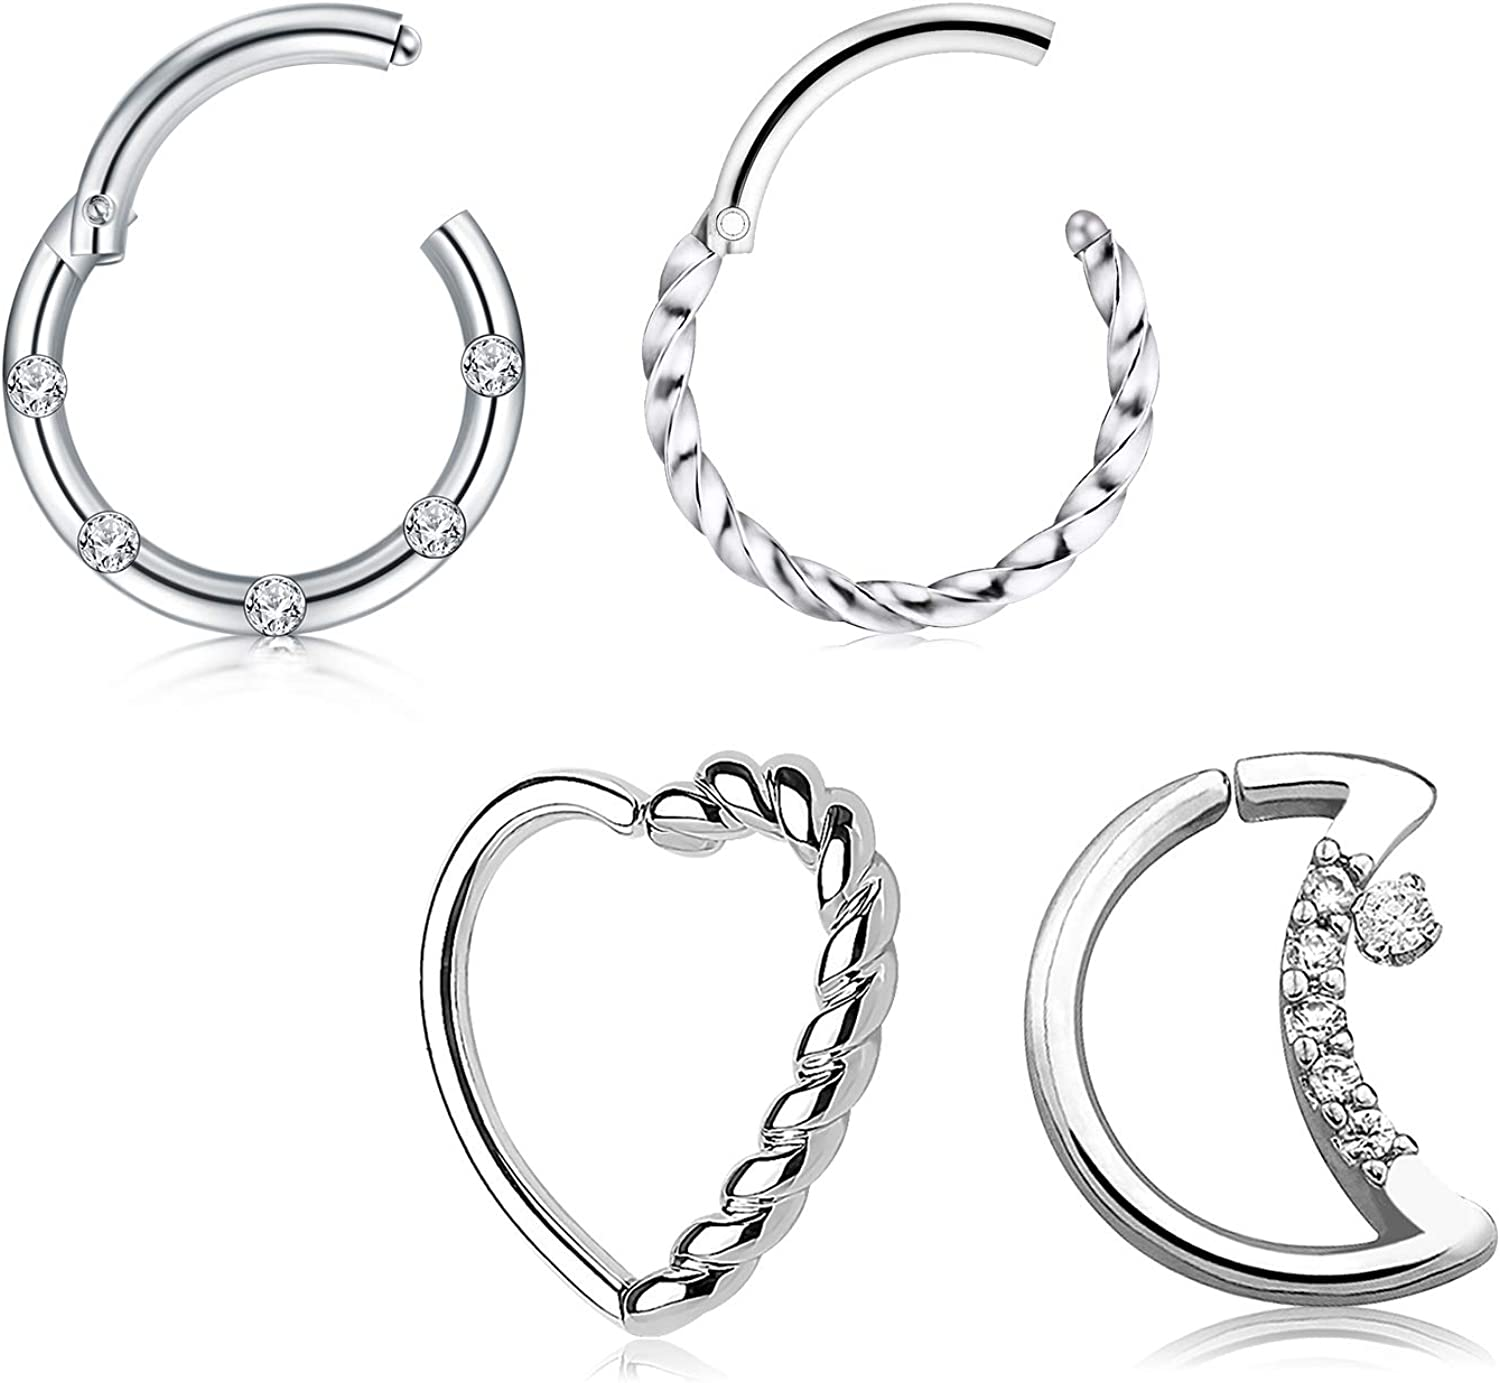 Briana Williams 16G Heart Moon Daith Piercing Jewelry Stainless Steel Tragus Helix Cartilage Daith Earring Clicker Rings Captive Bead Horseshoe Hoop Earrings for Women Men